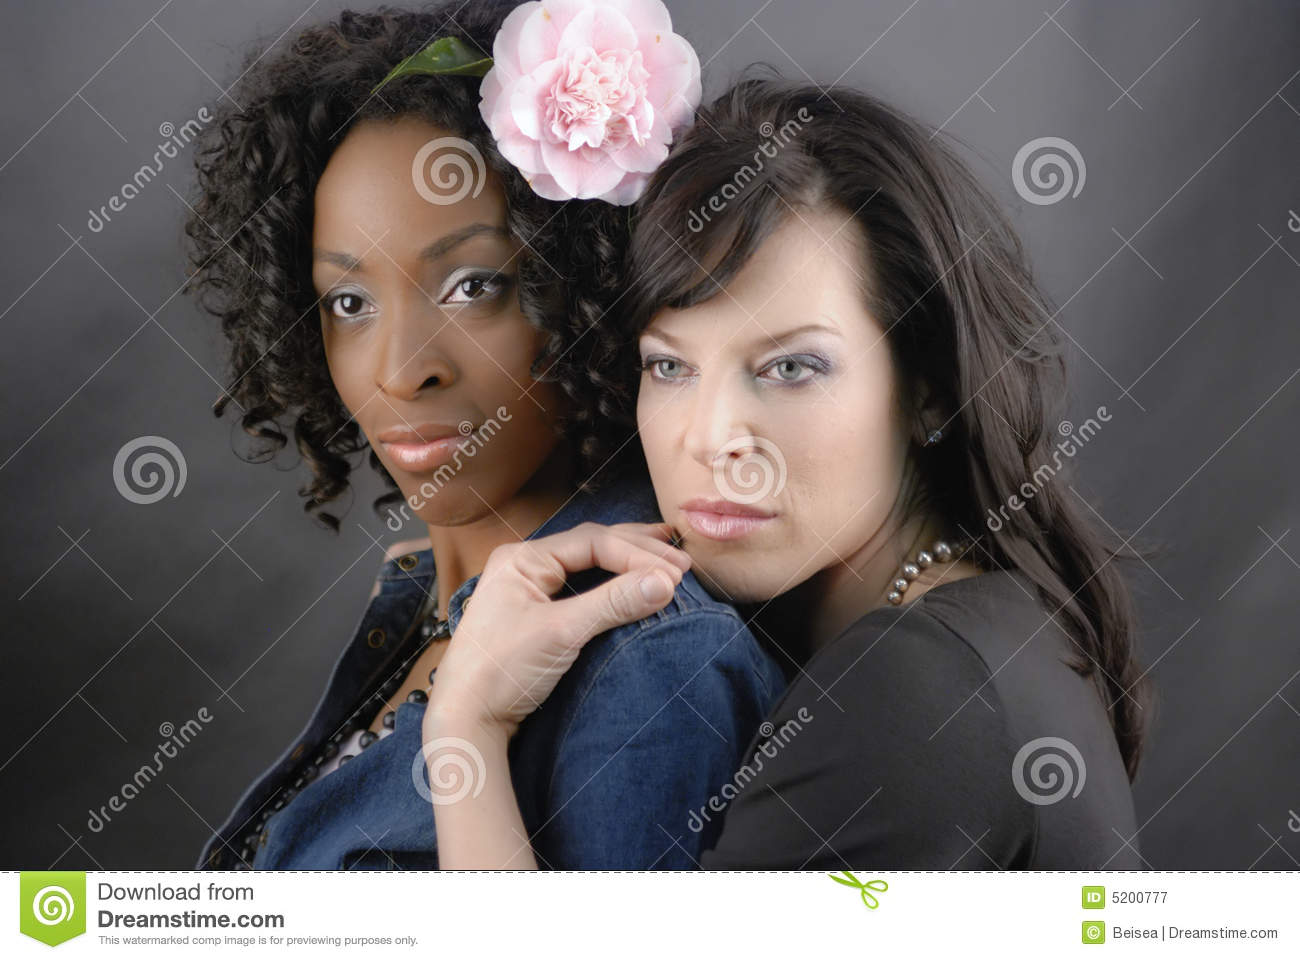 Can black woman on white women lesbian consider